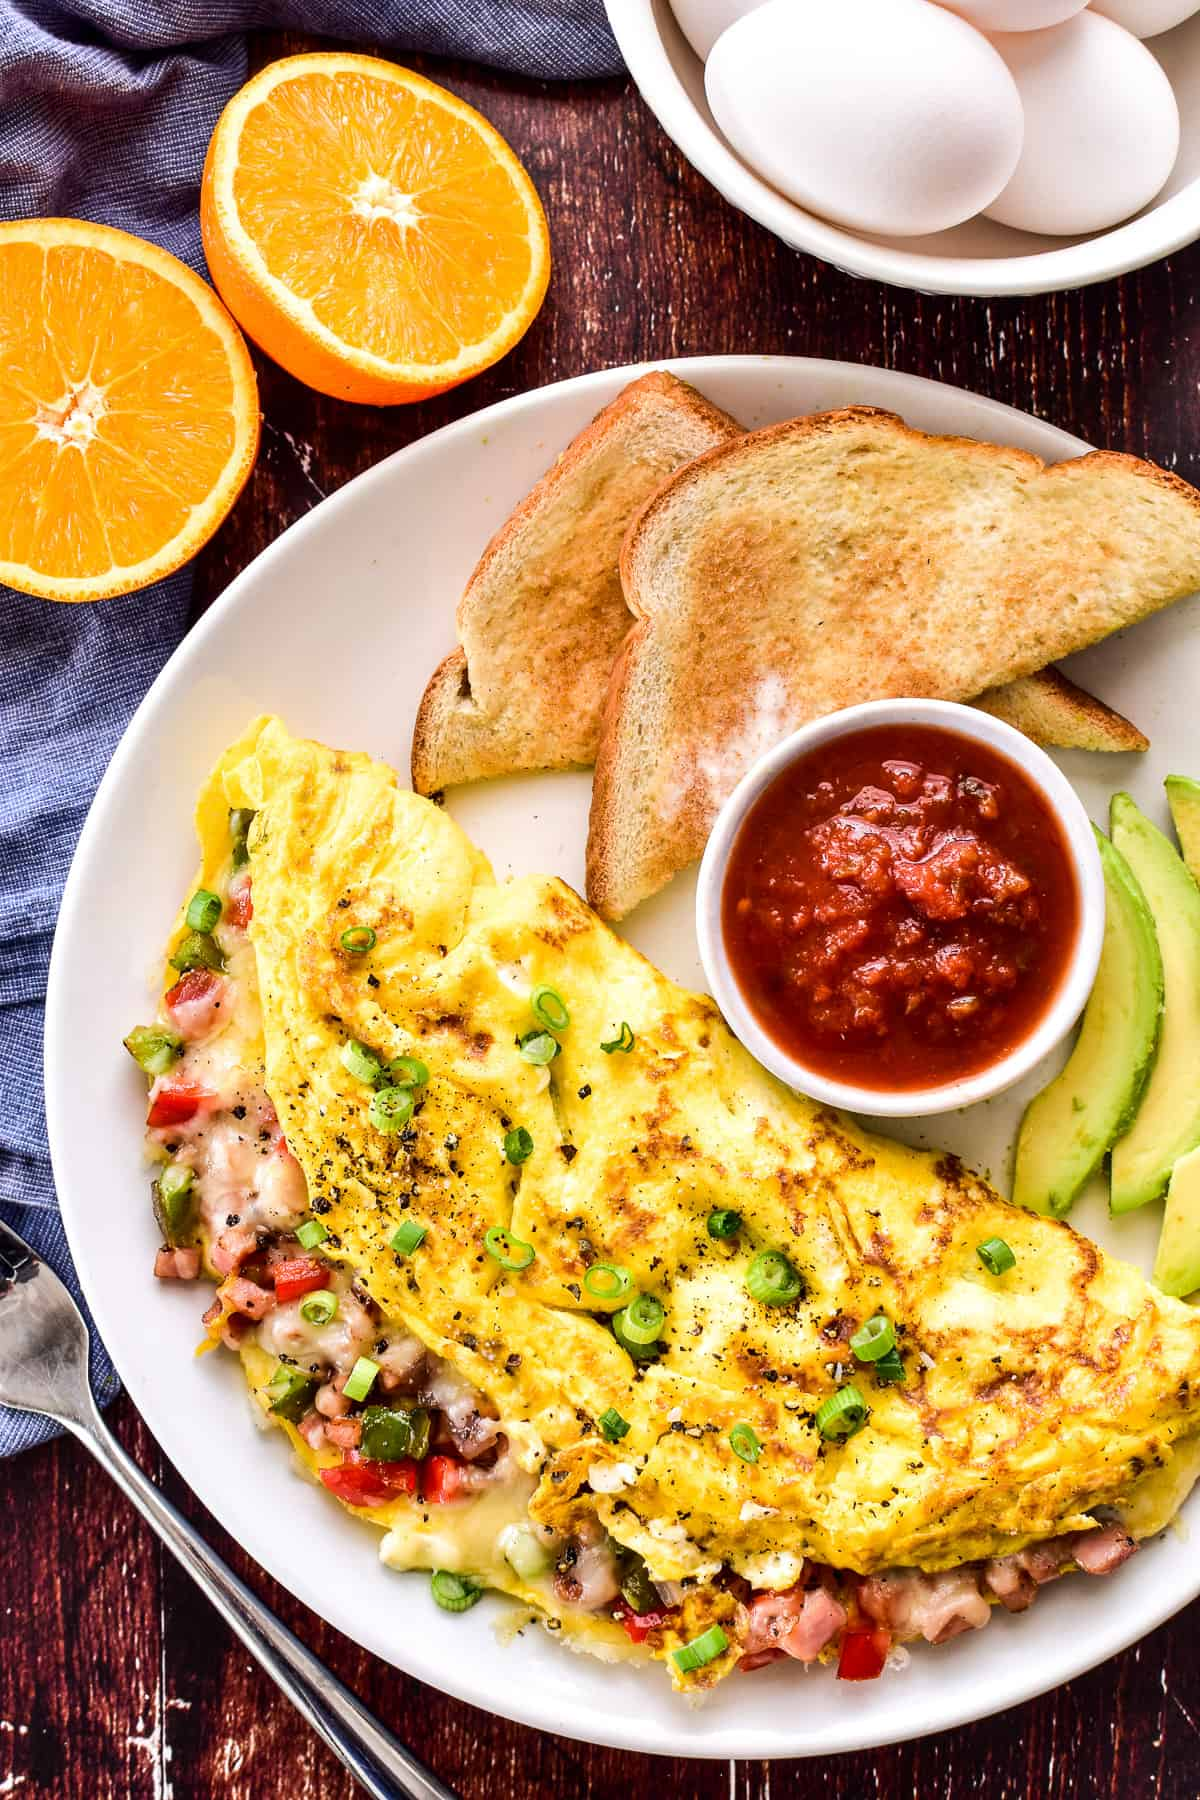 Western Omelette on a plate with salsa, avocado slices, and toast